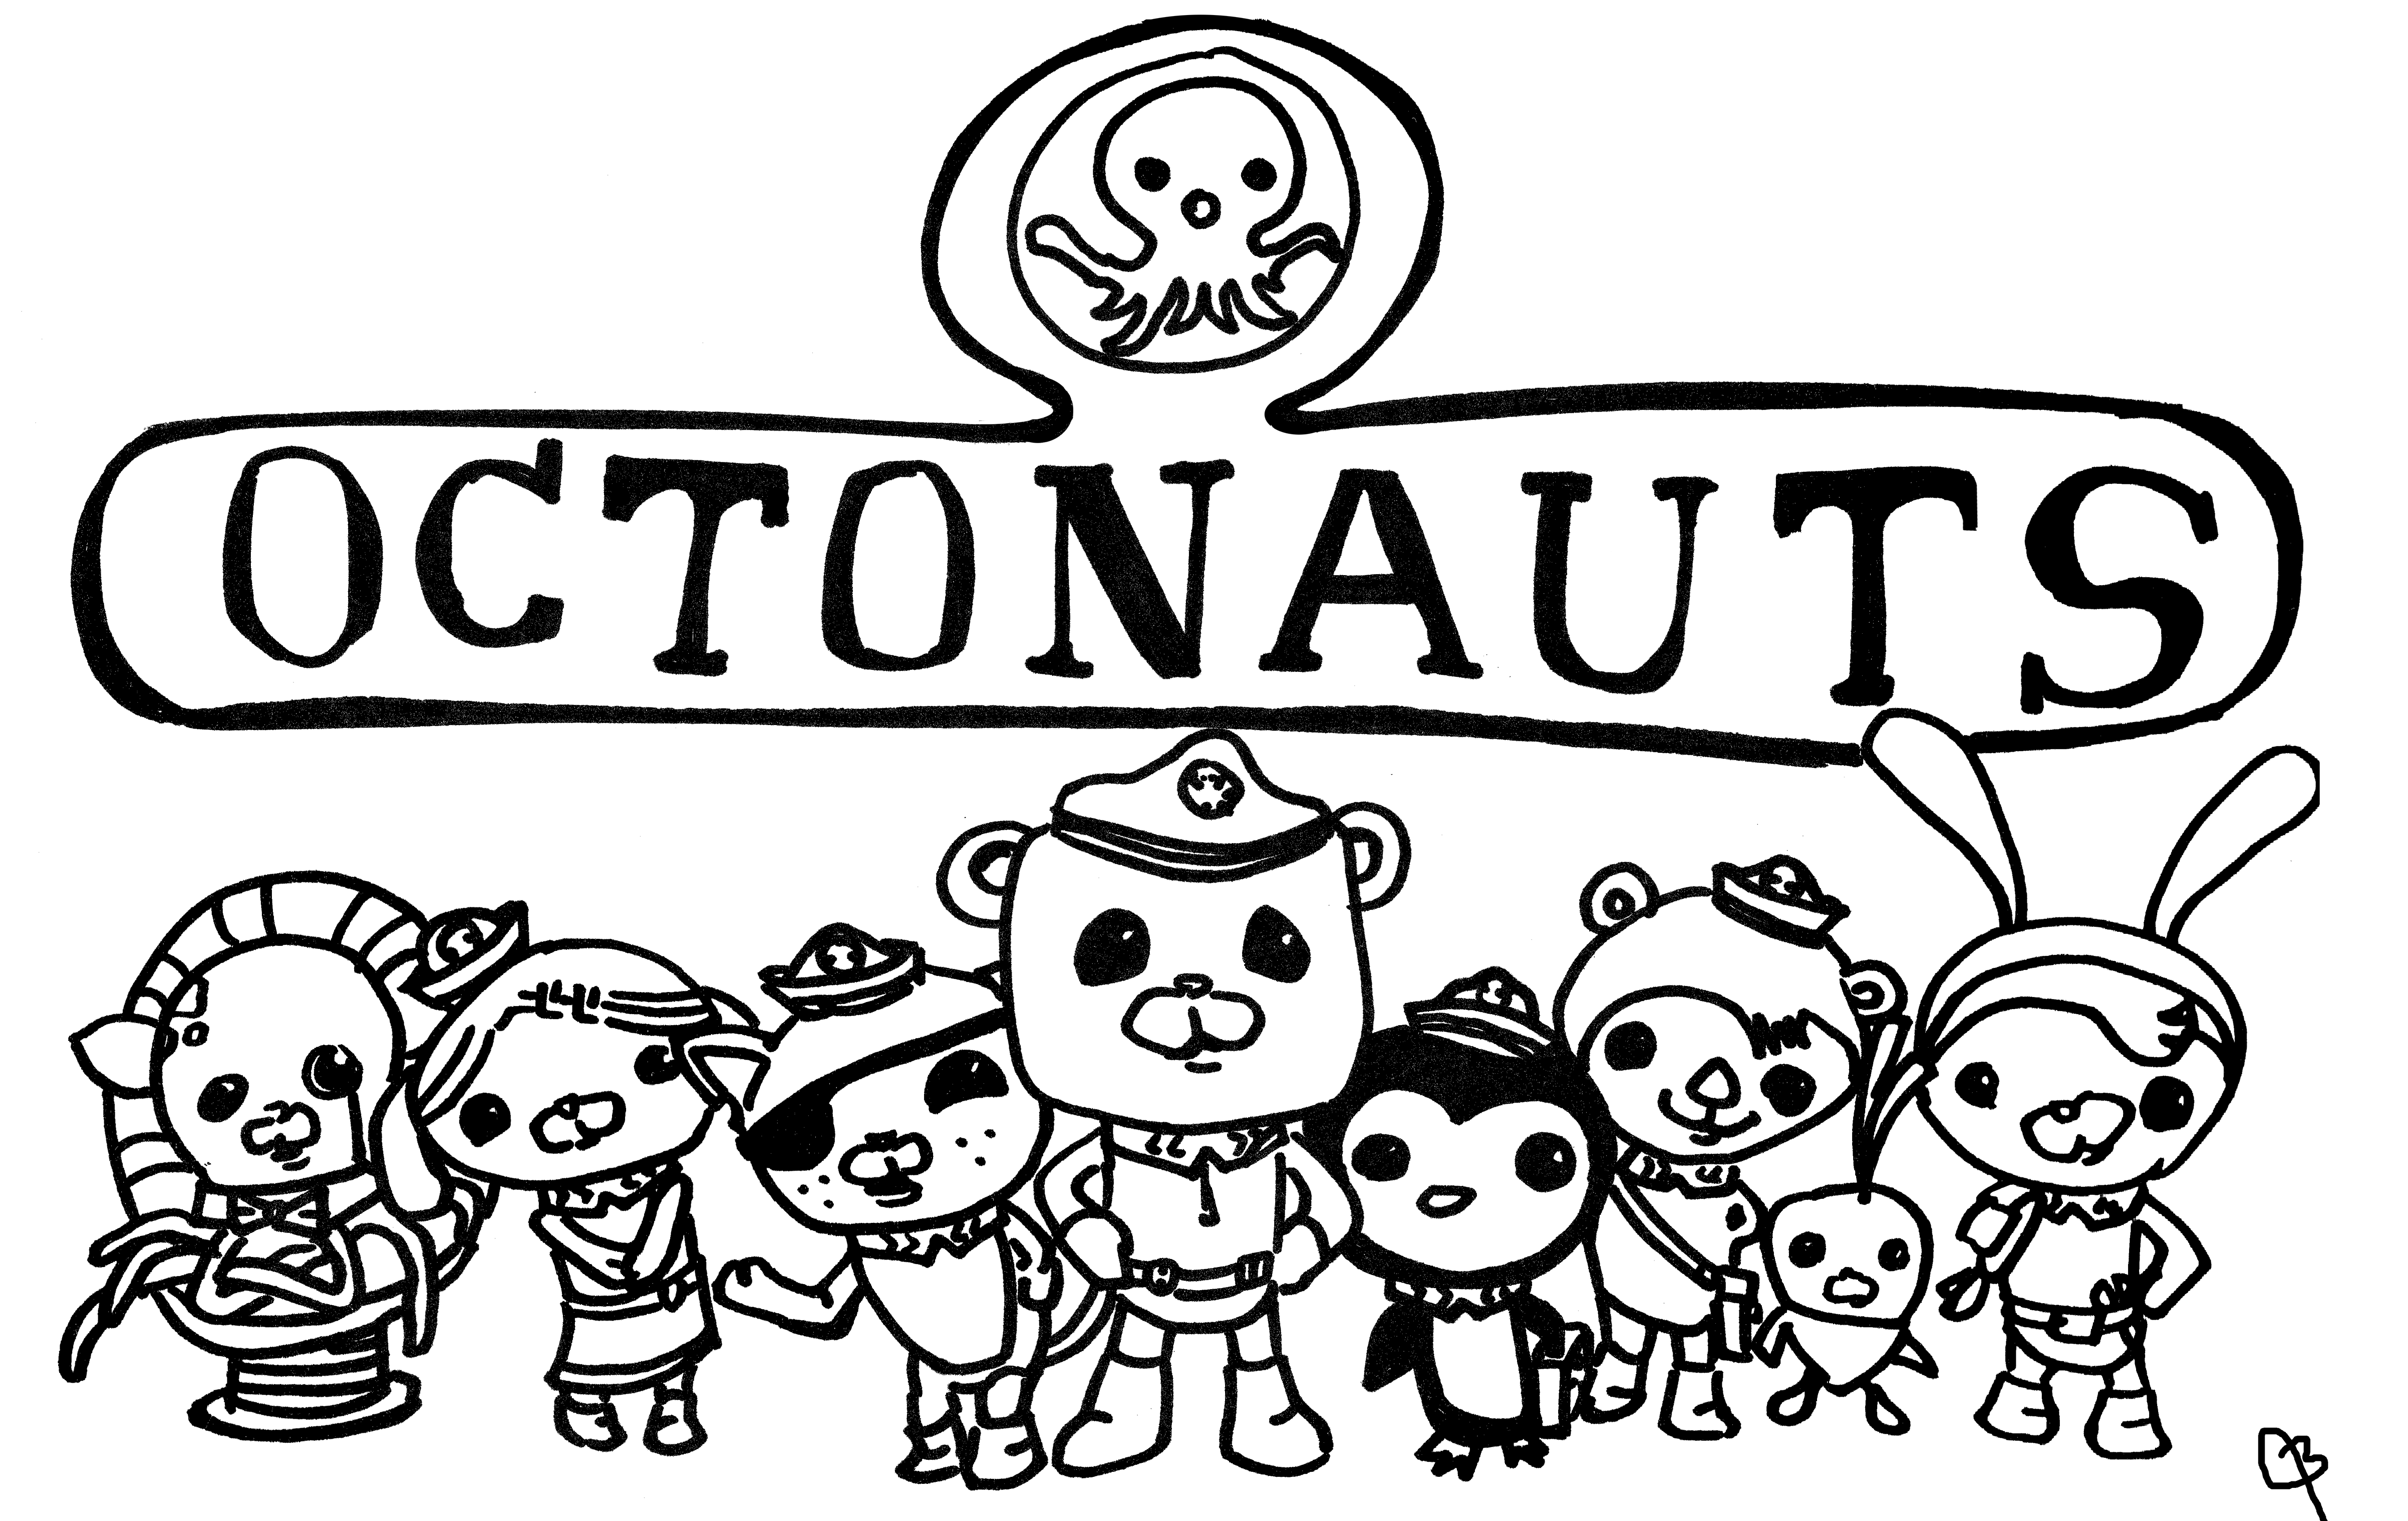 Sharpie Octonauts From Poster My Work Colouring Pages Tv Cartoons Kids Cartoons Cartoon Kids Cartoon Tv Colouring Pages